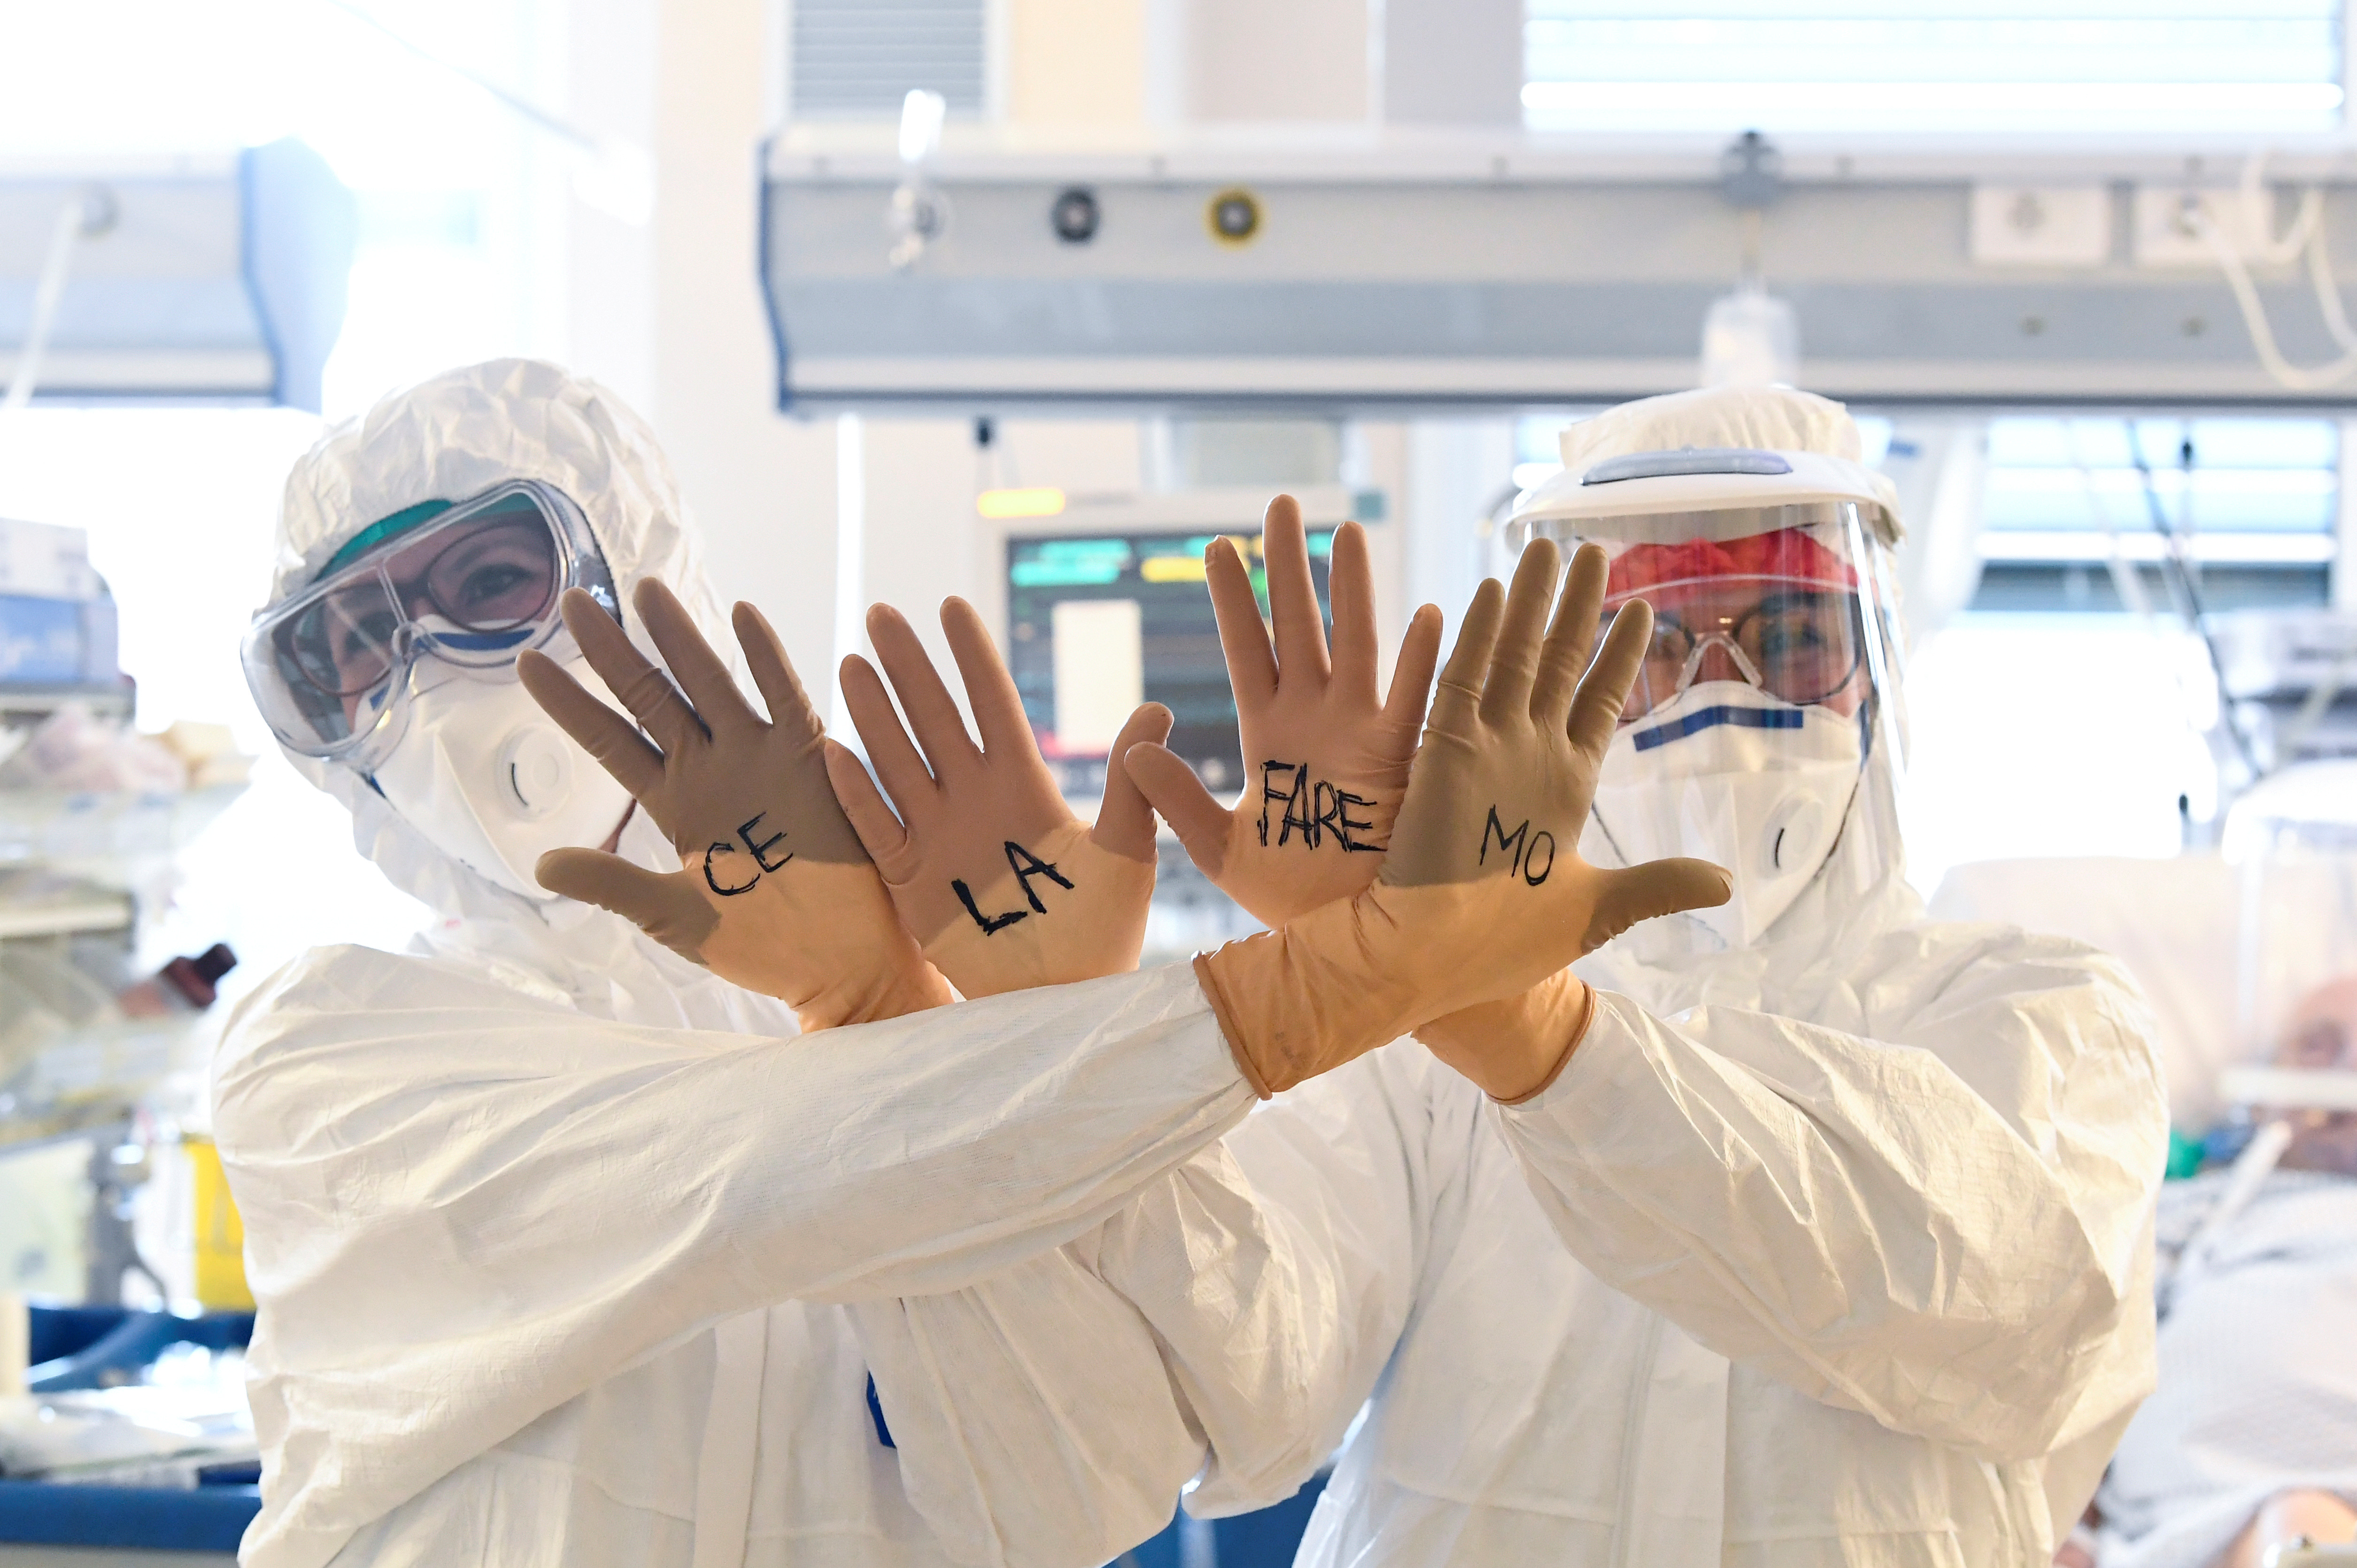 """Medical staff members wearing protective gear show their hands with the words written on gloves """"Ce la faremo"""" (""""We'll make it"""") written on them as they treat patients suffering from the coronavirus disease (COVID-19) in the intensive care unit at the Circolo hospital in Varese, Italy April 9, 2020. REUTERS/Flavio Lo Scalzo"""